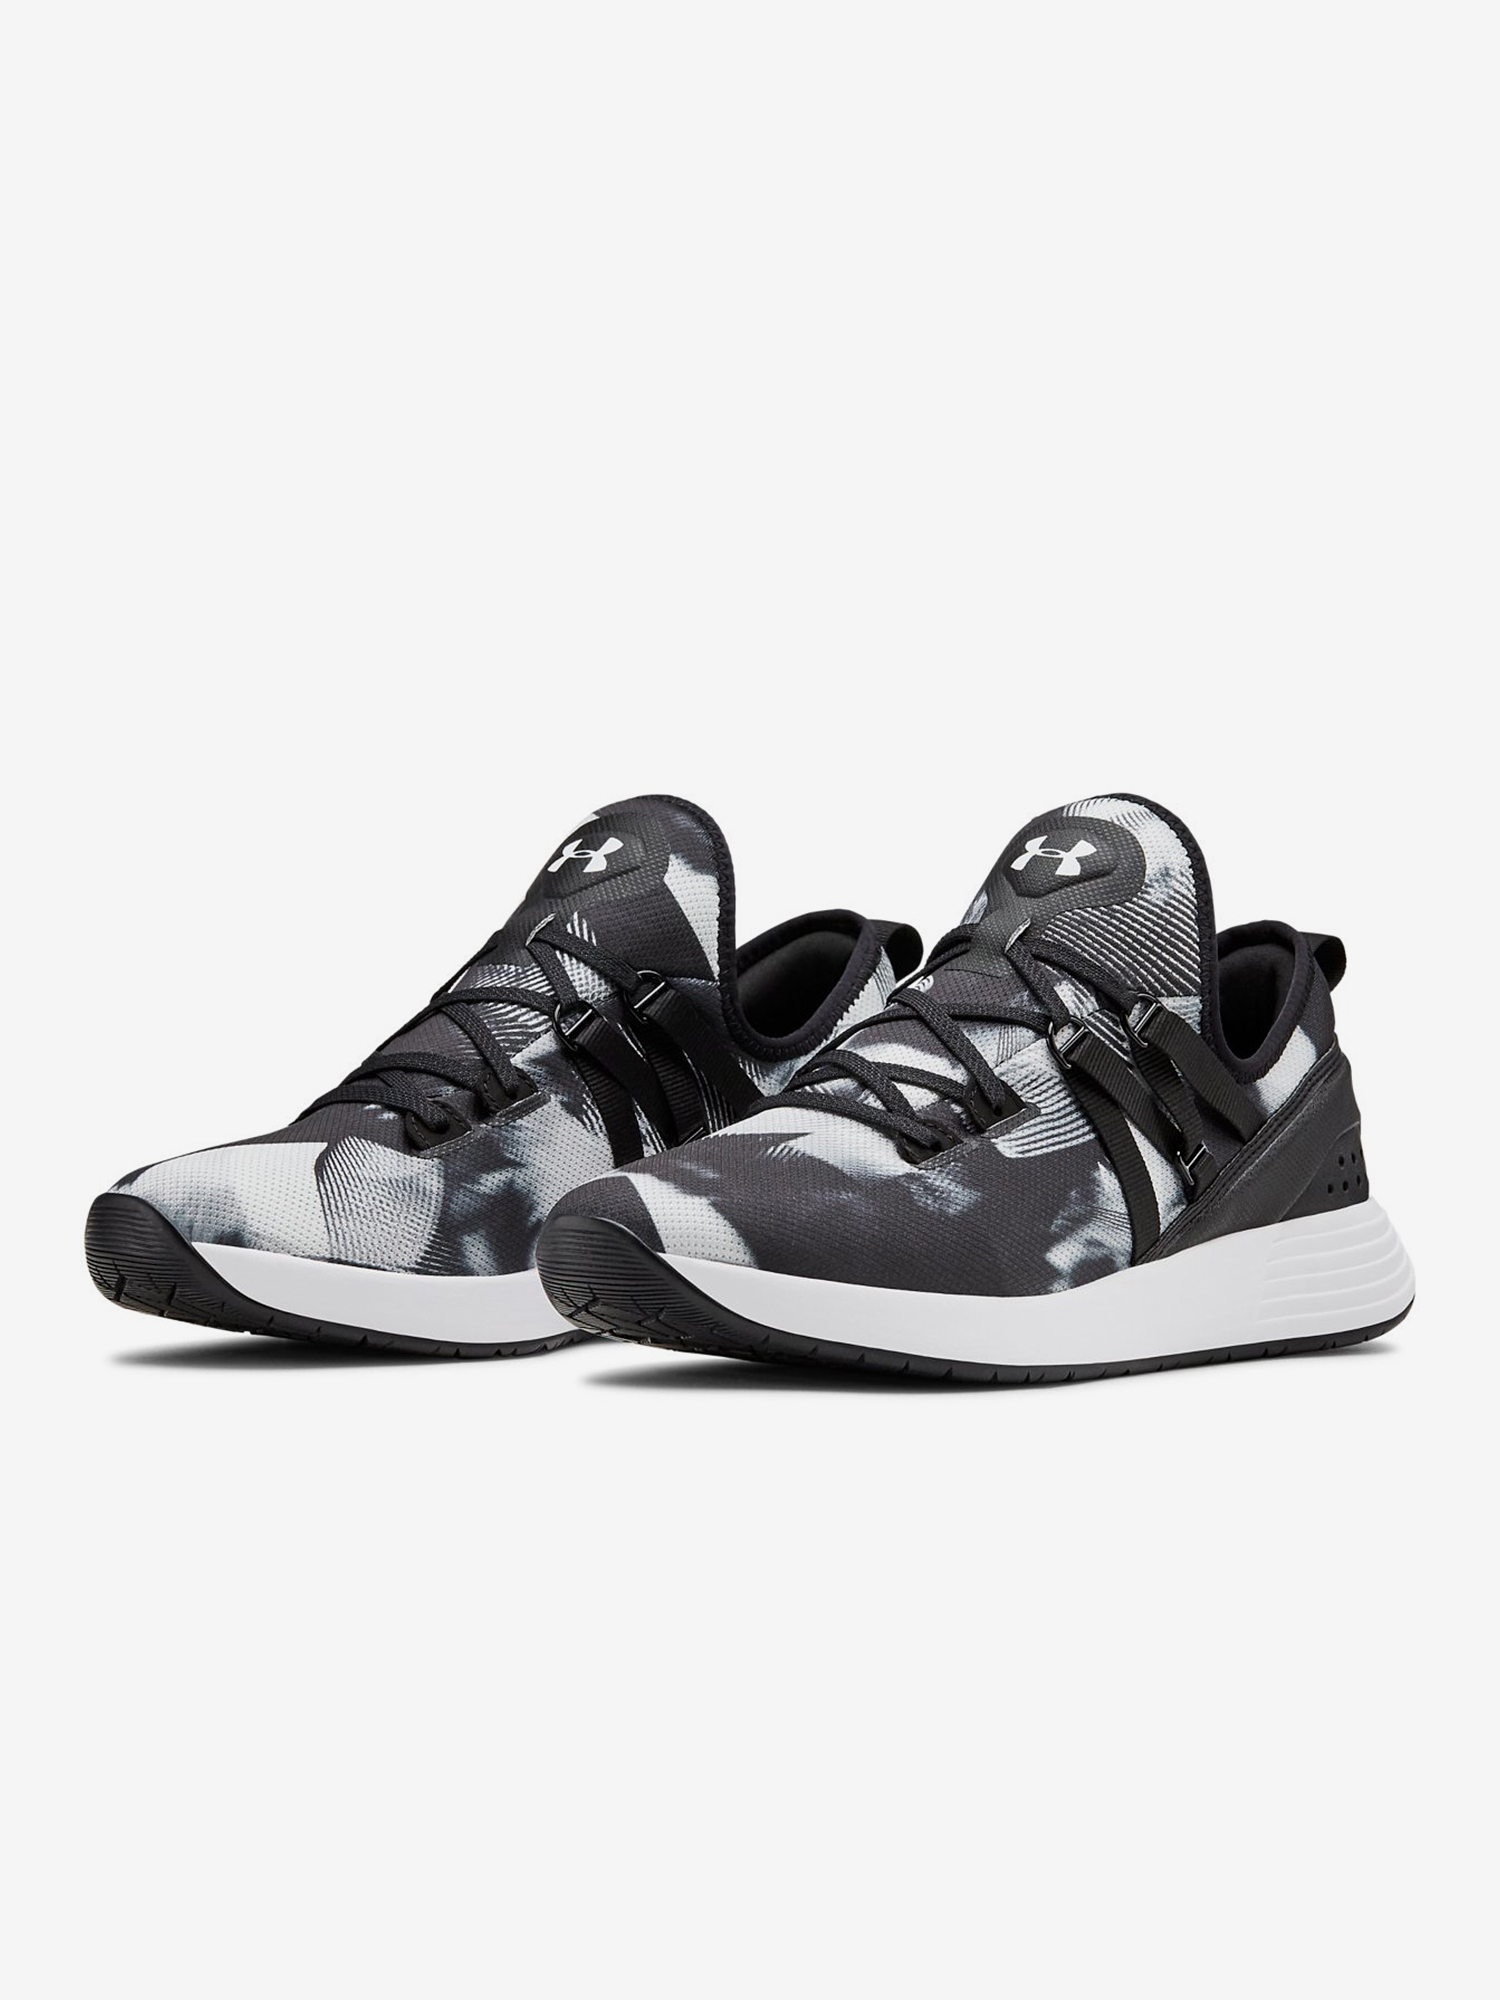 Boty Under Armour W Breathe Trainer Prnt-Blk (3)